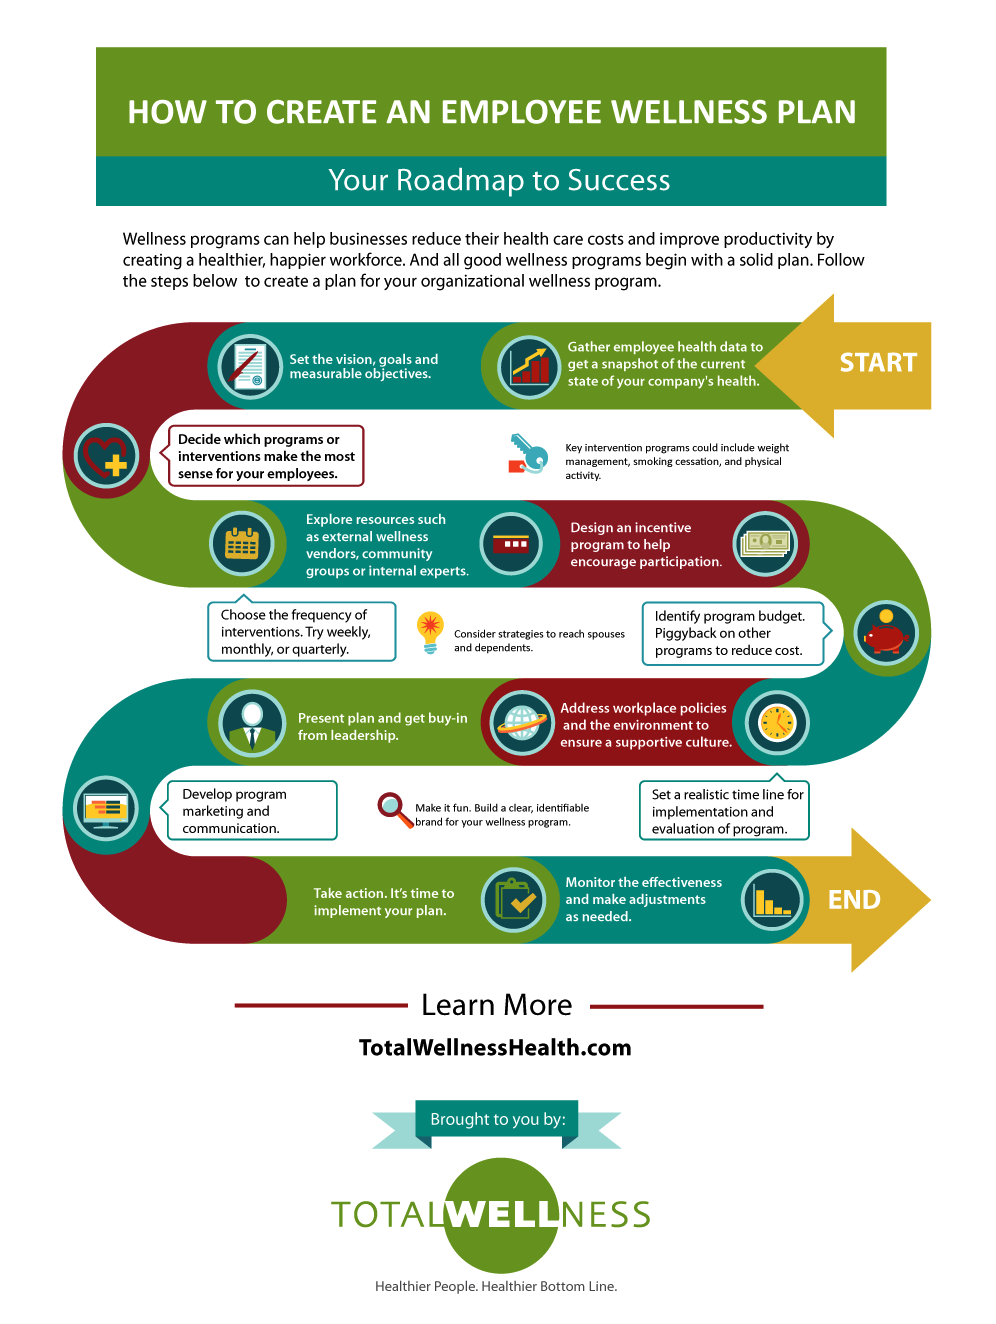 How to create an employee wellness plan Infographic